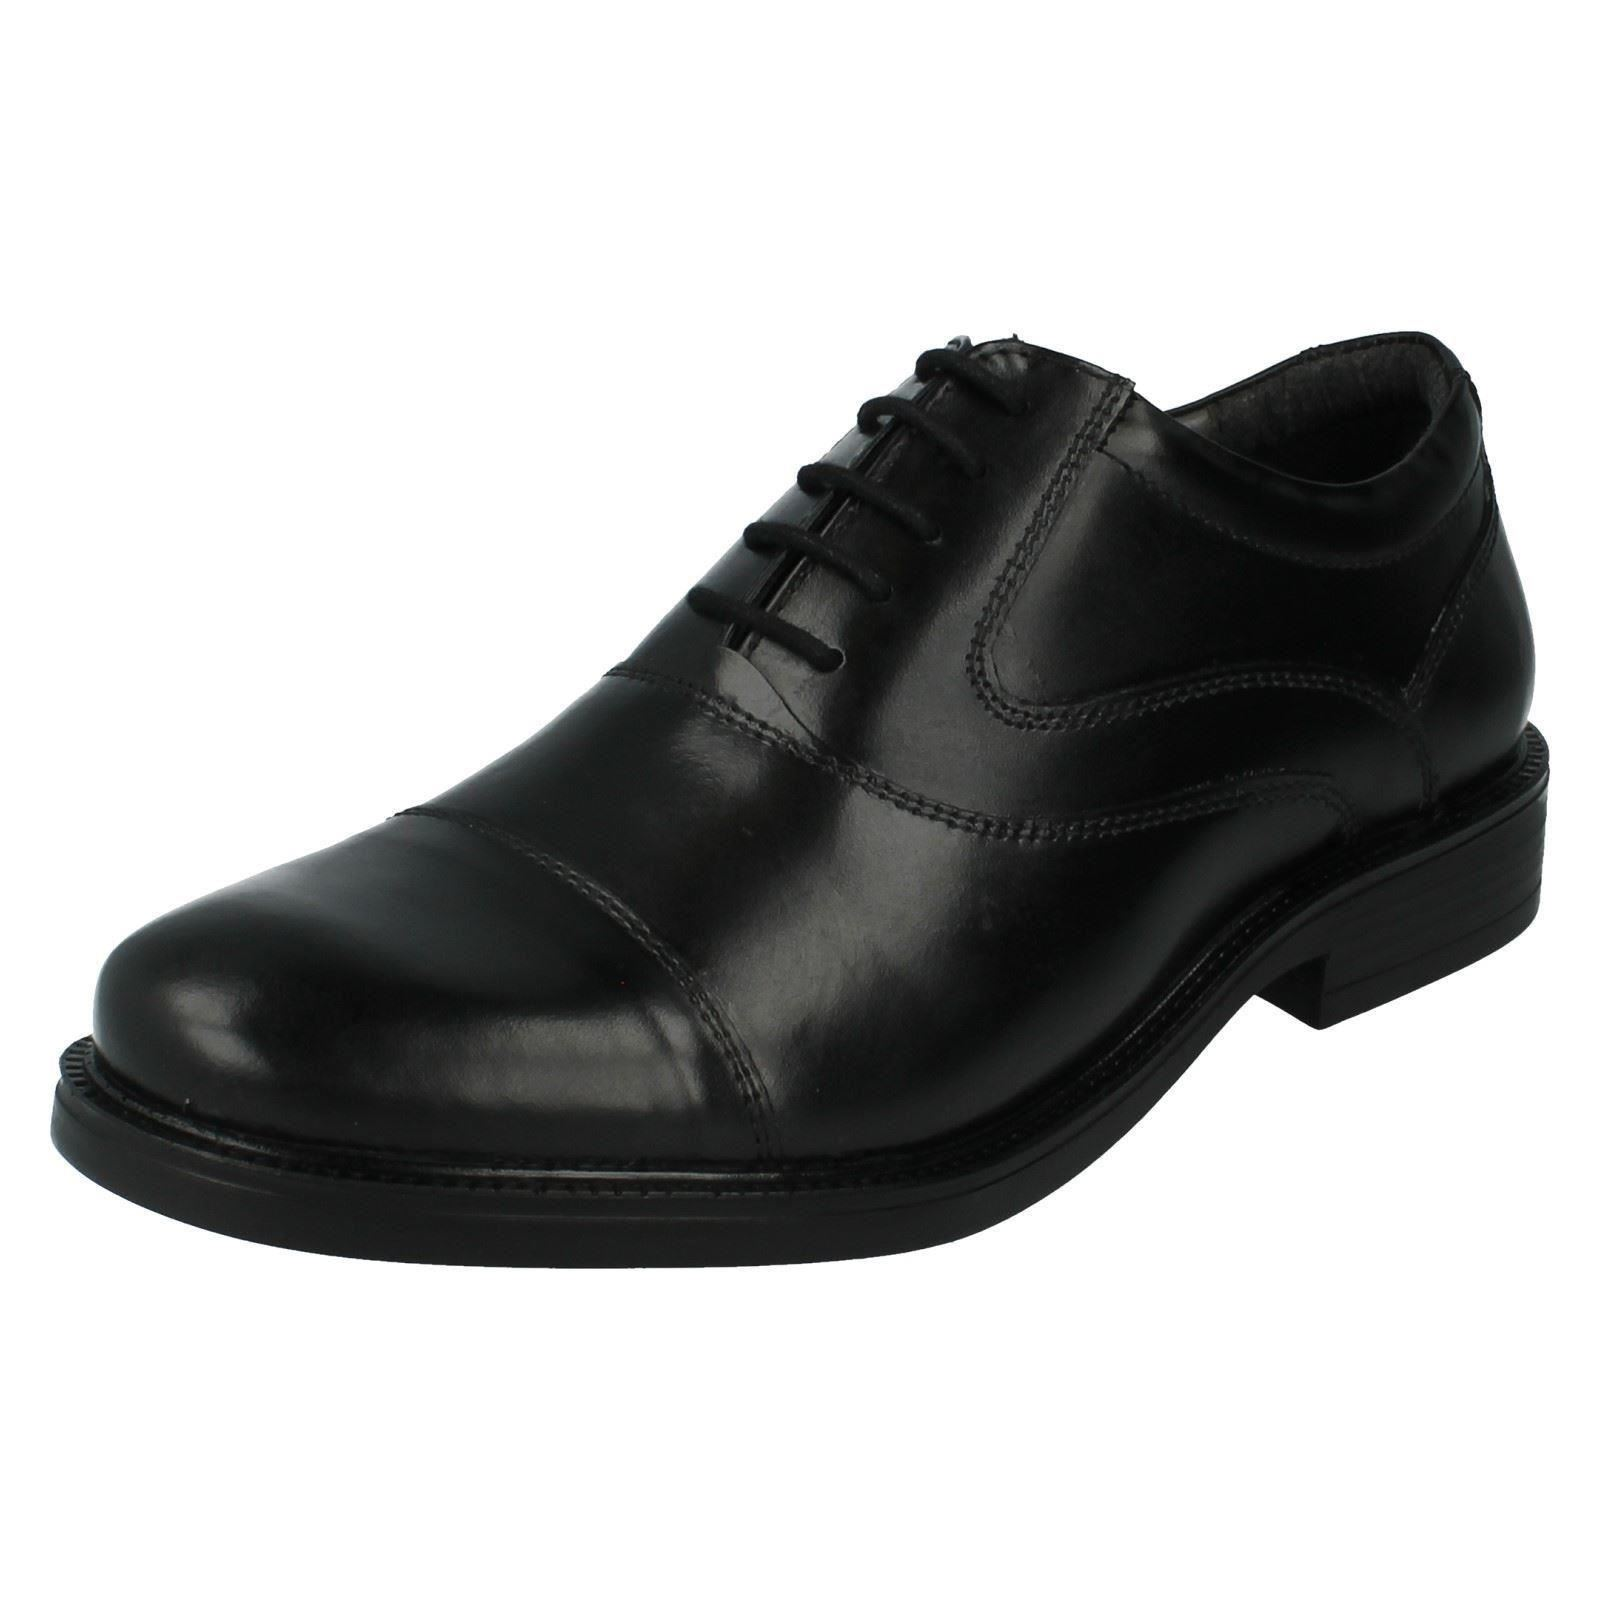 Mens Black Oxford Shoes Uk